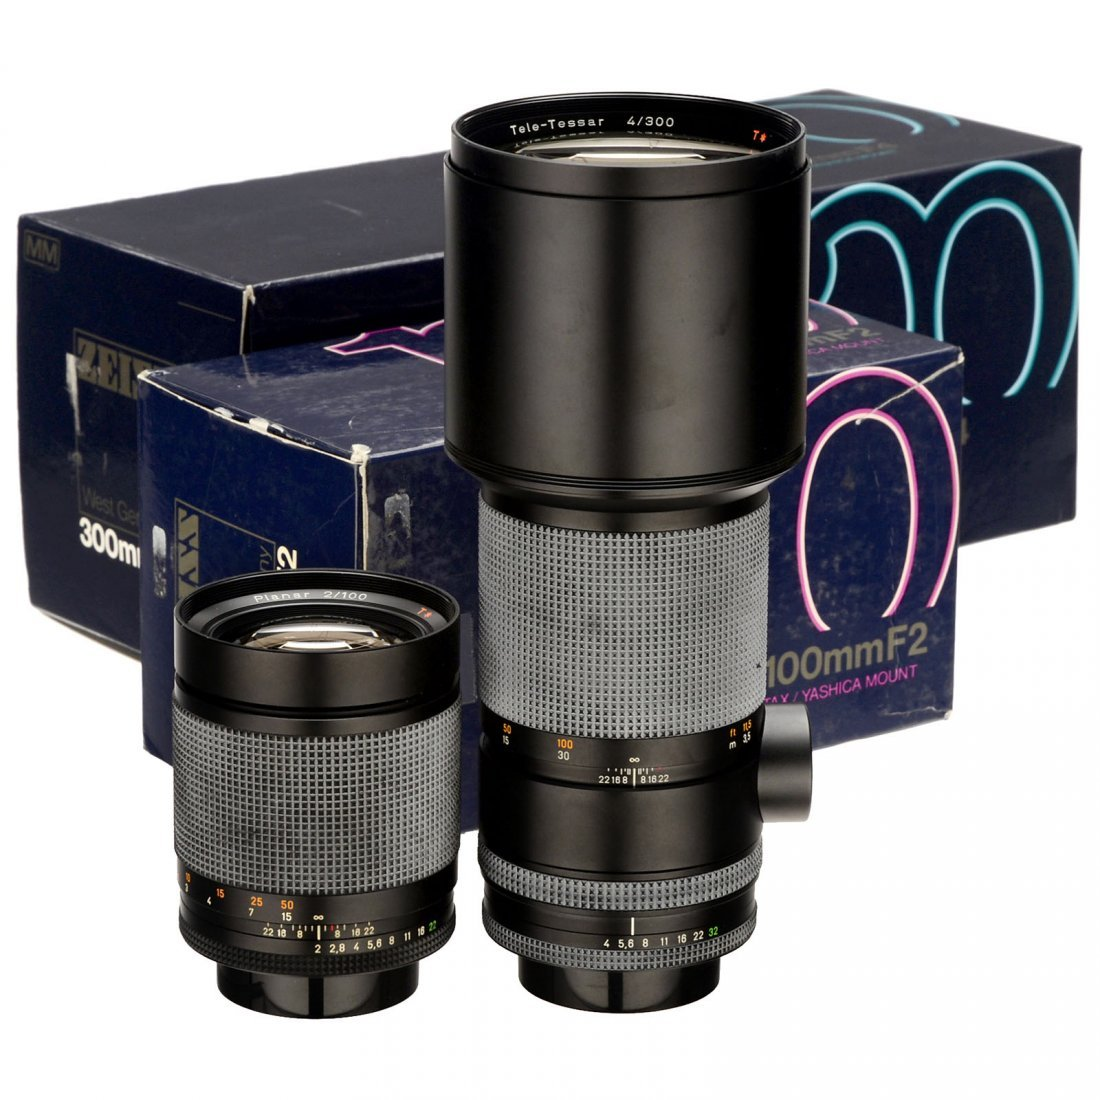 Planar T 2/100 mm (MM) and Tele-Tessar T 4/300 mm (MM)